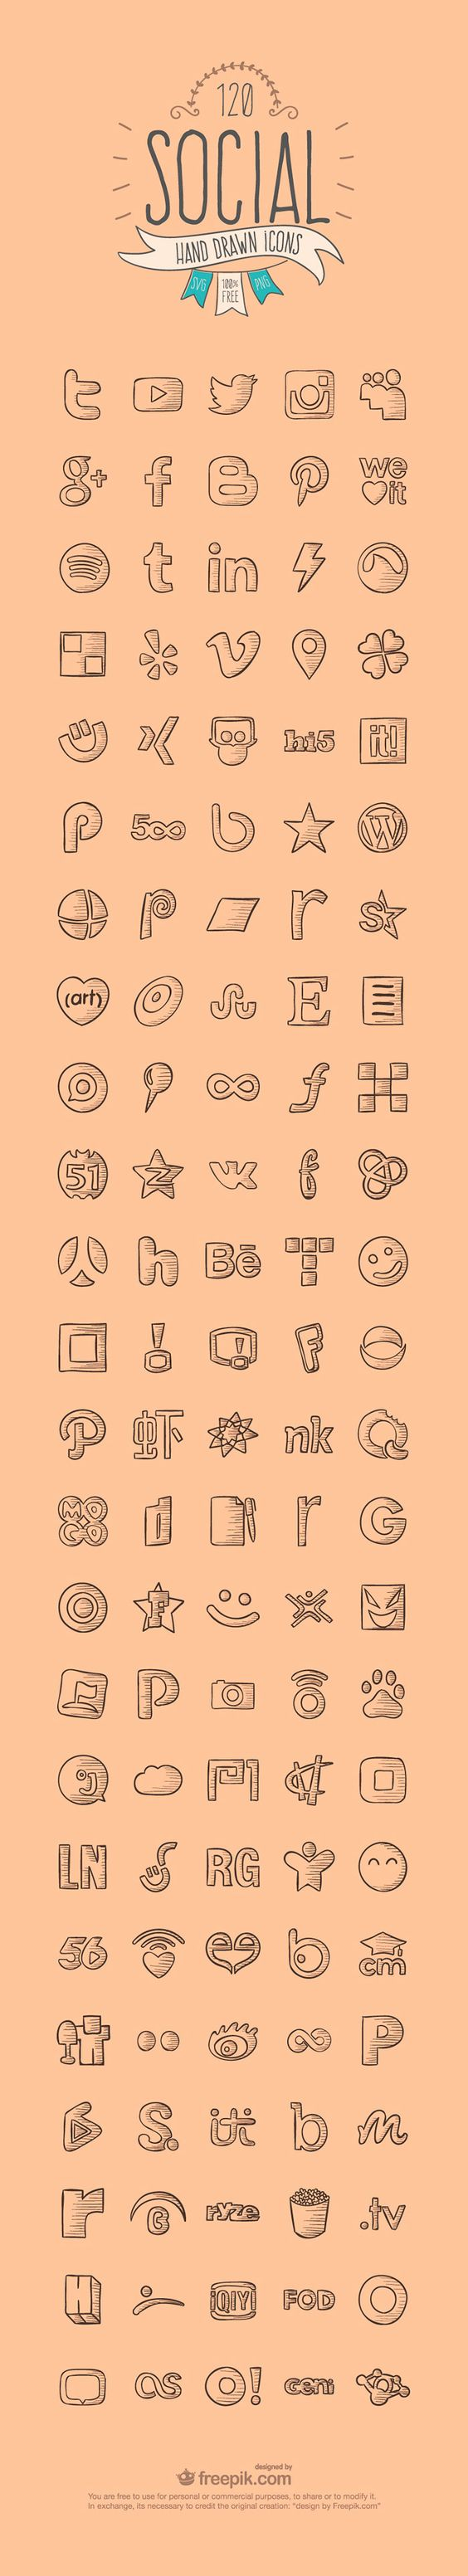 120 Hand Drawn Social Media Icons repinned by bluejdesign.co.uk